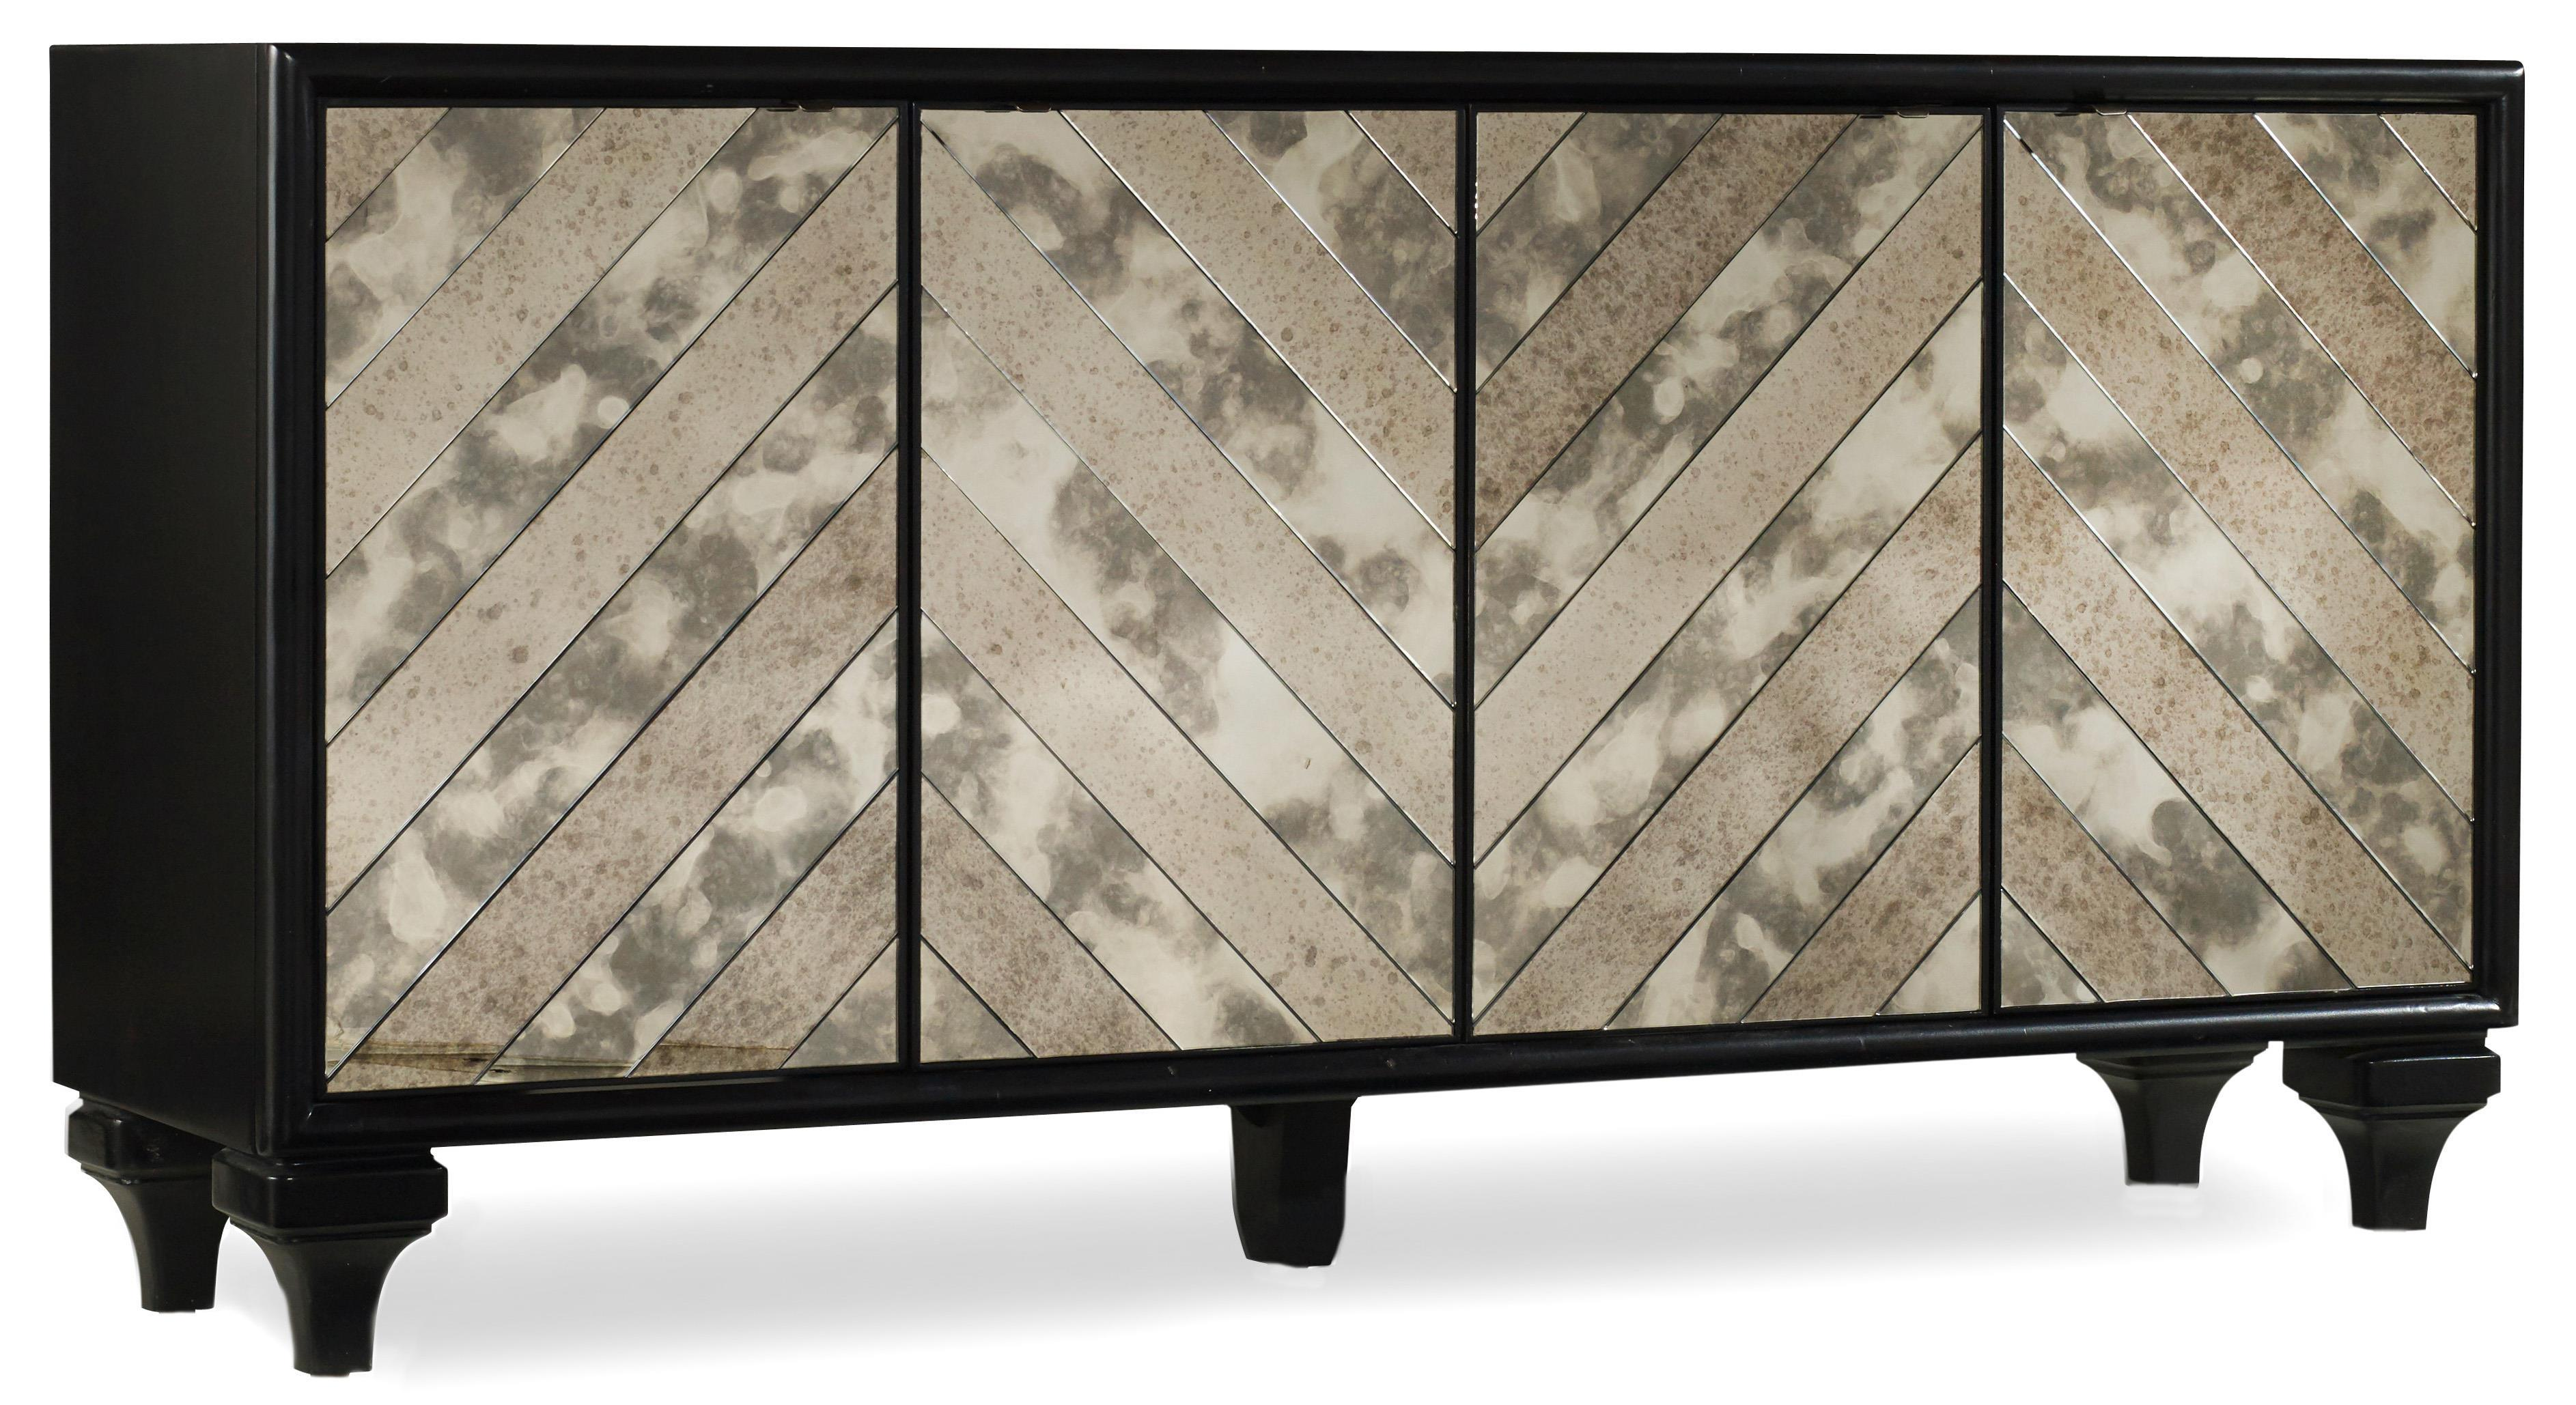 Hooker Furniture Mélange Mirrored Angle Console - Item Number: 638-85176